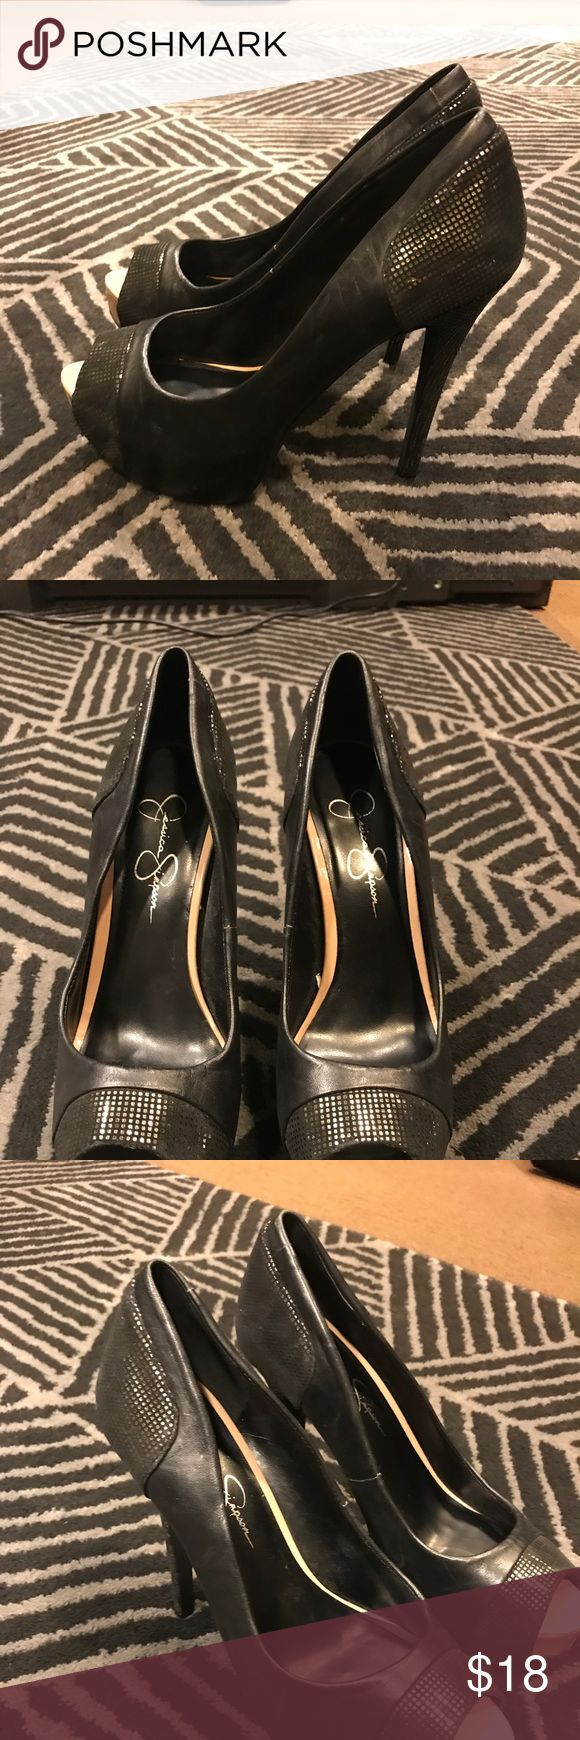 Jessica Simpson Black Pumps 8.5 Super hot, Jessica Simpson black high heel dress Pump. Size 8.5 Jessica Simpson Shoes Heels